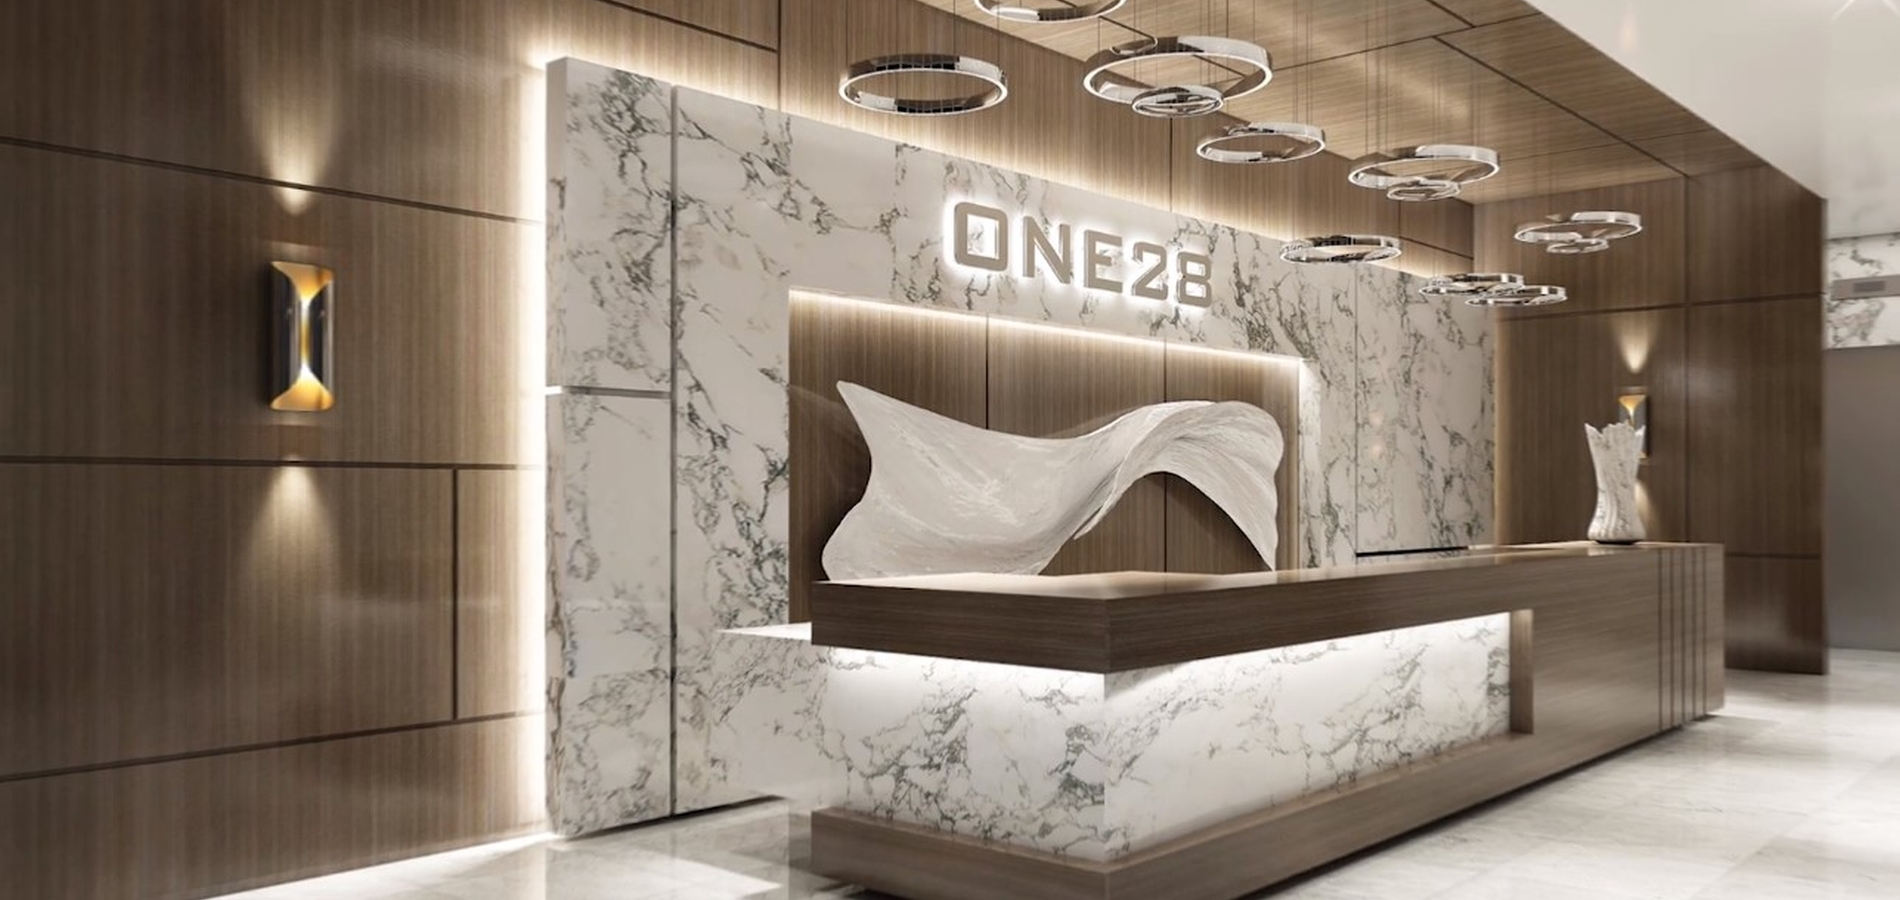 ONE28   Waterloo Condos   King St  N    University Ave   Laurier